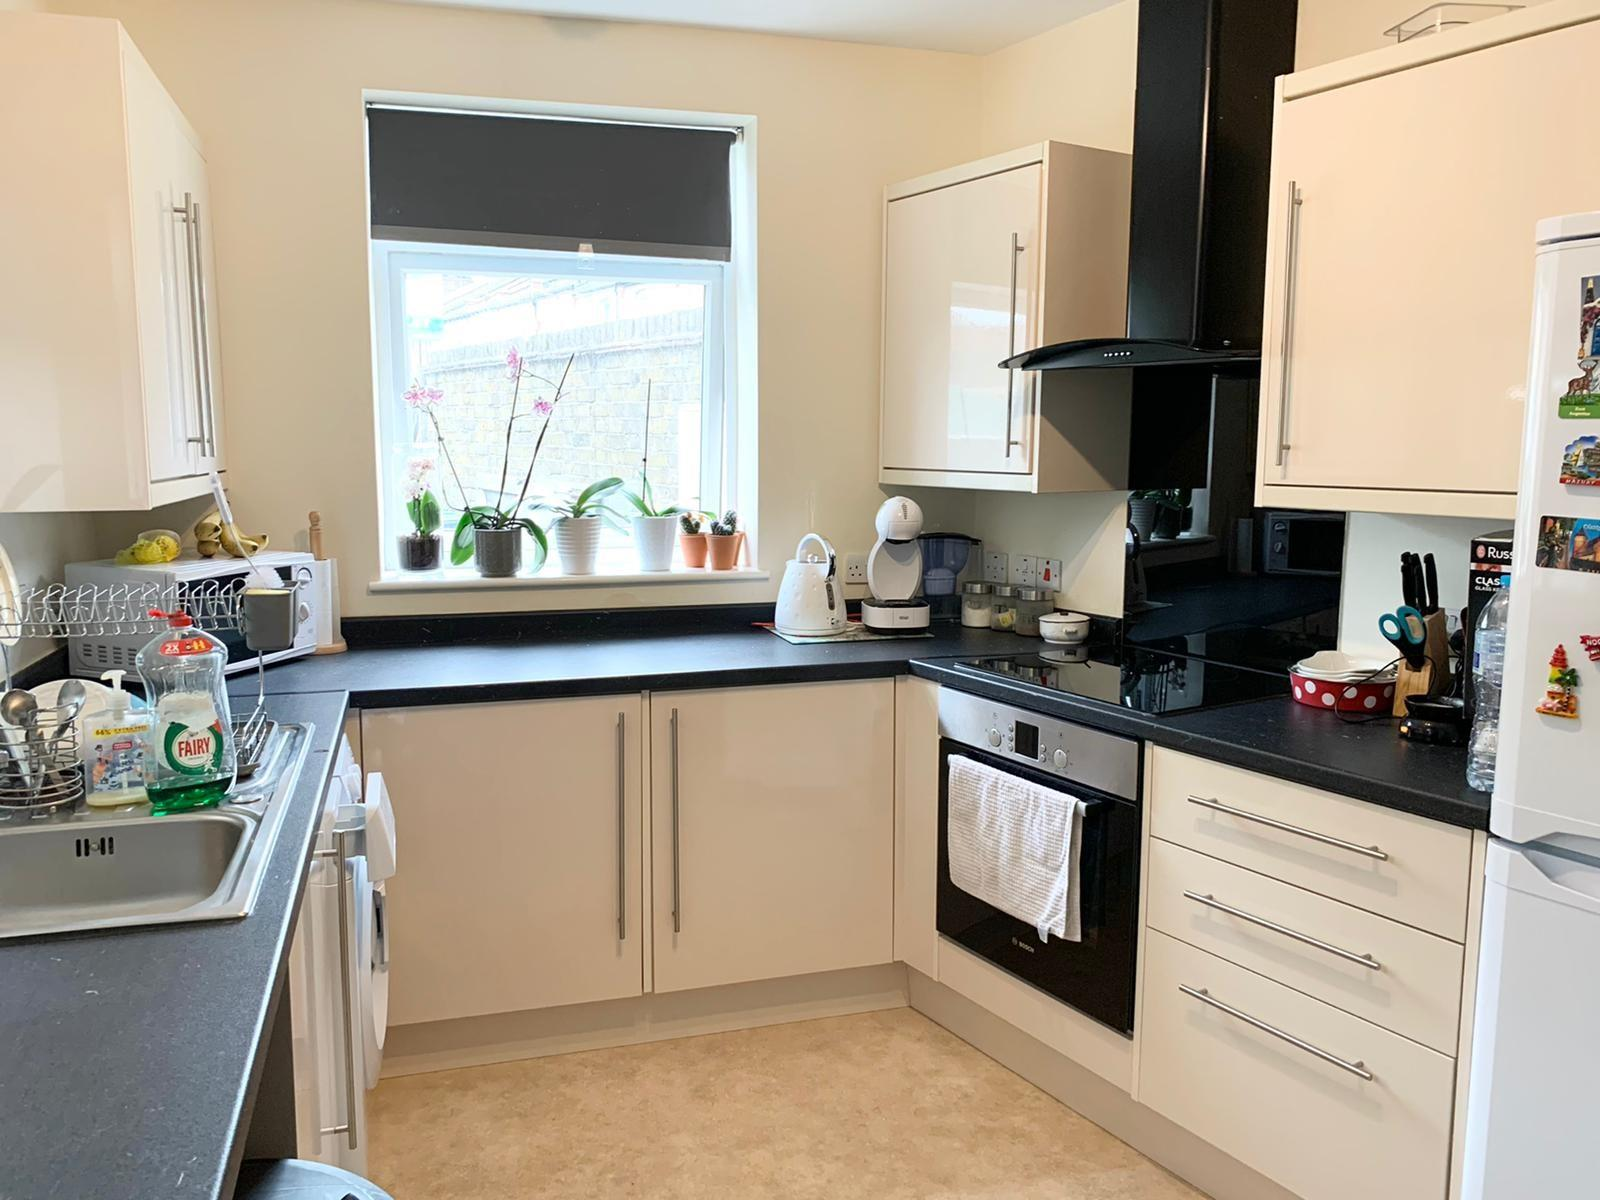 1 bed Flat for rent in Watford. From Brown and Merry - Watford